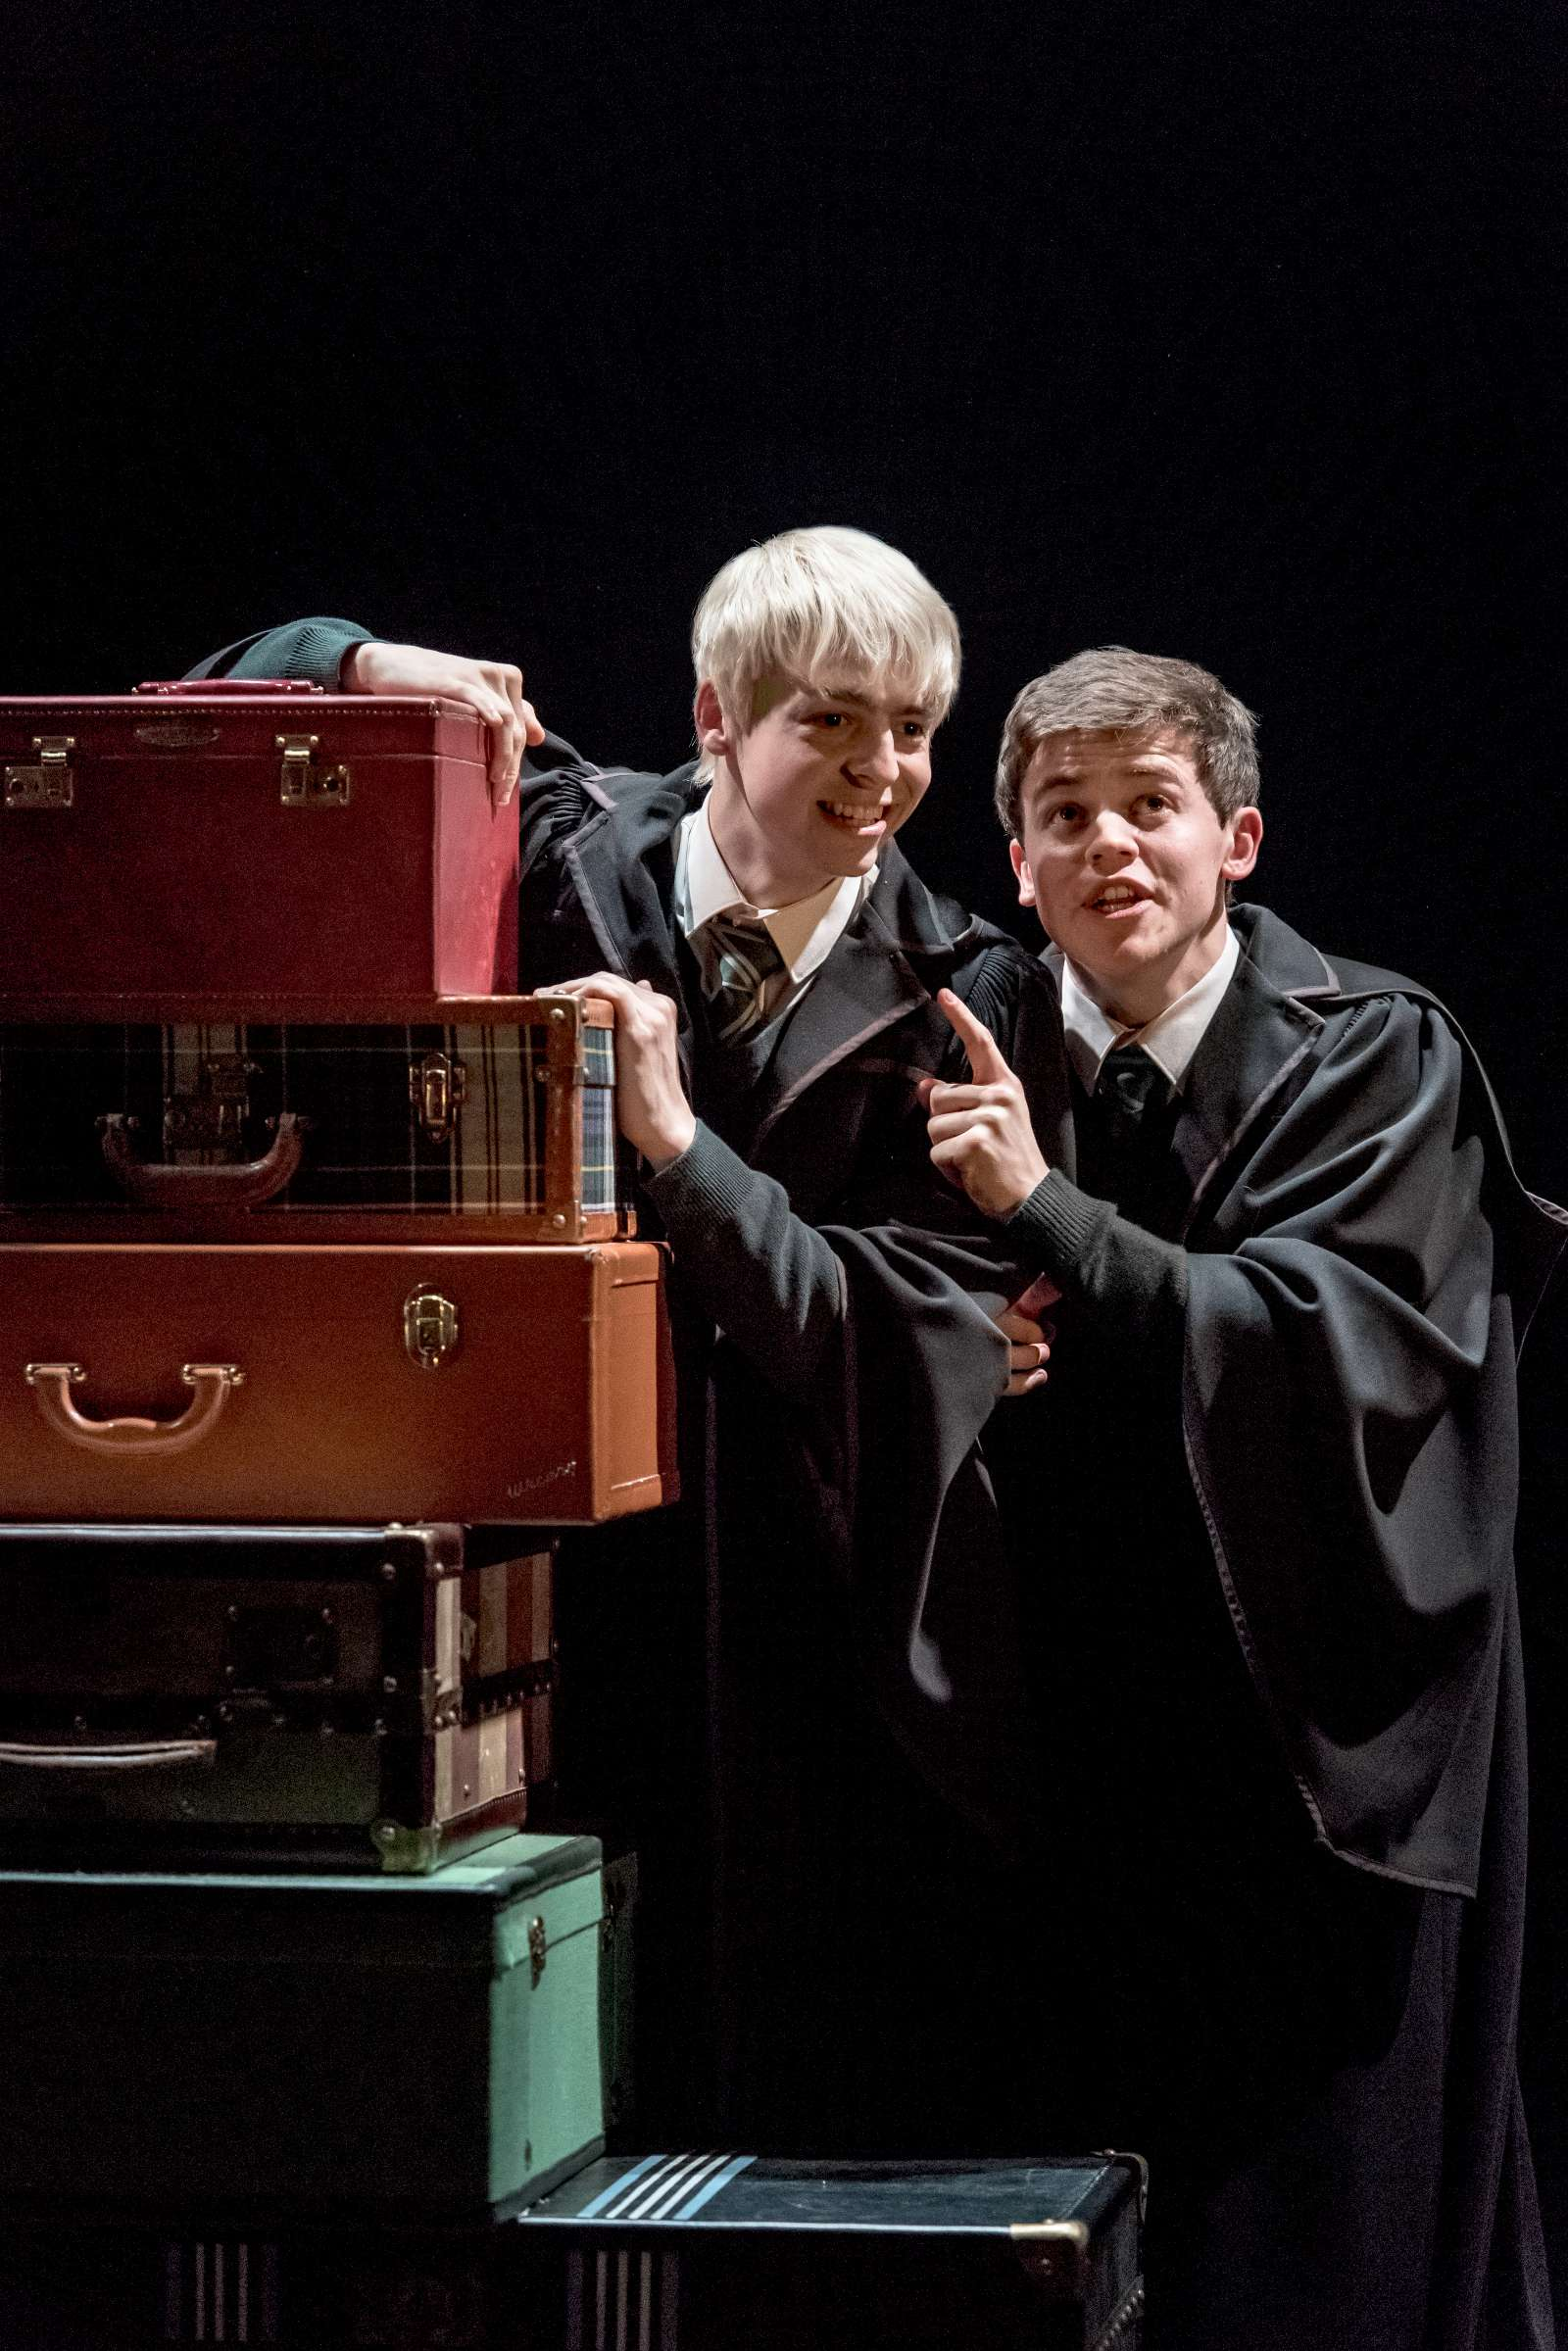 The Harry Potter universe still can't translate its gay subtext to